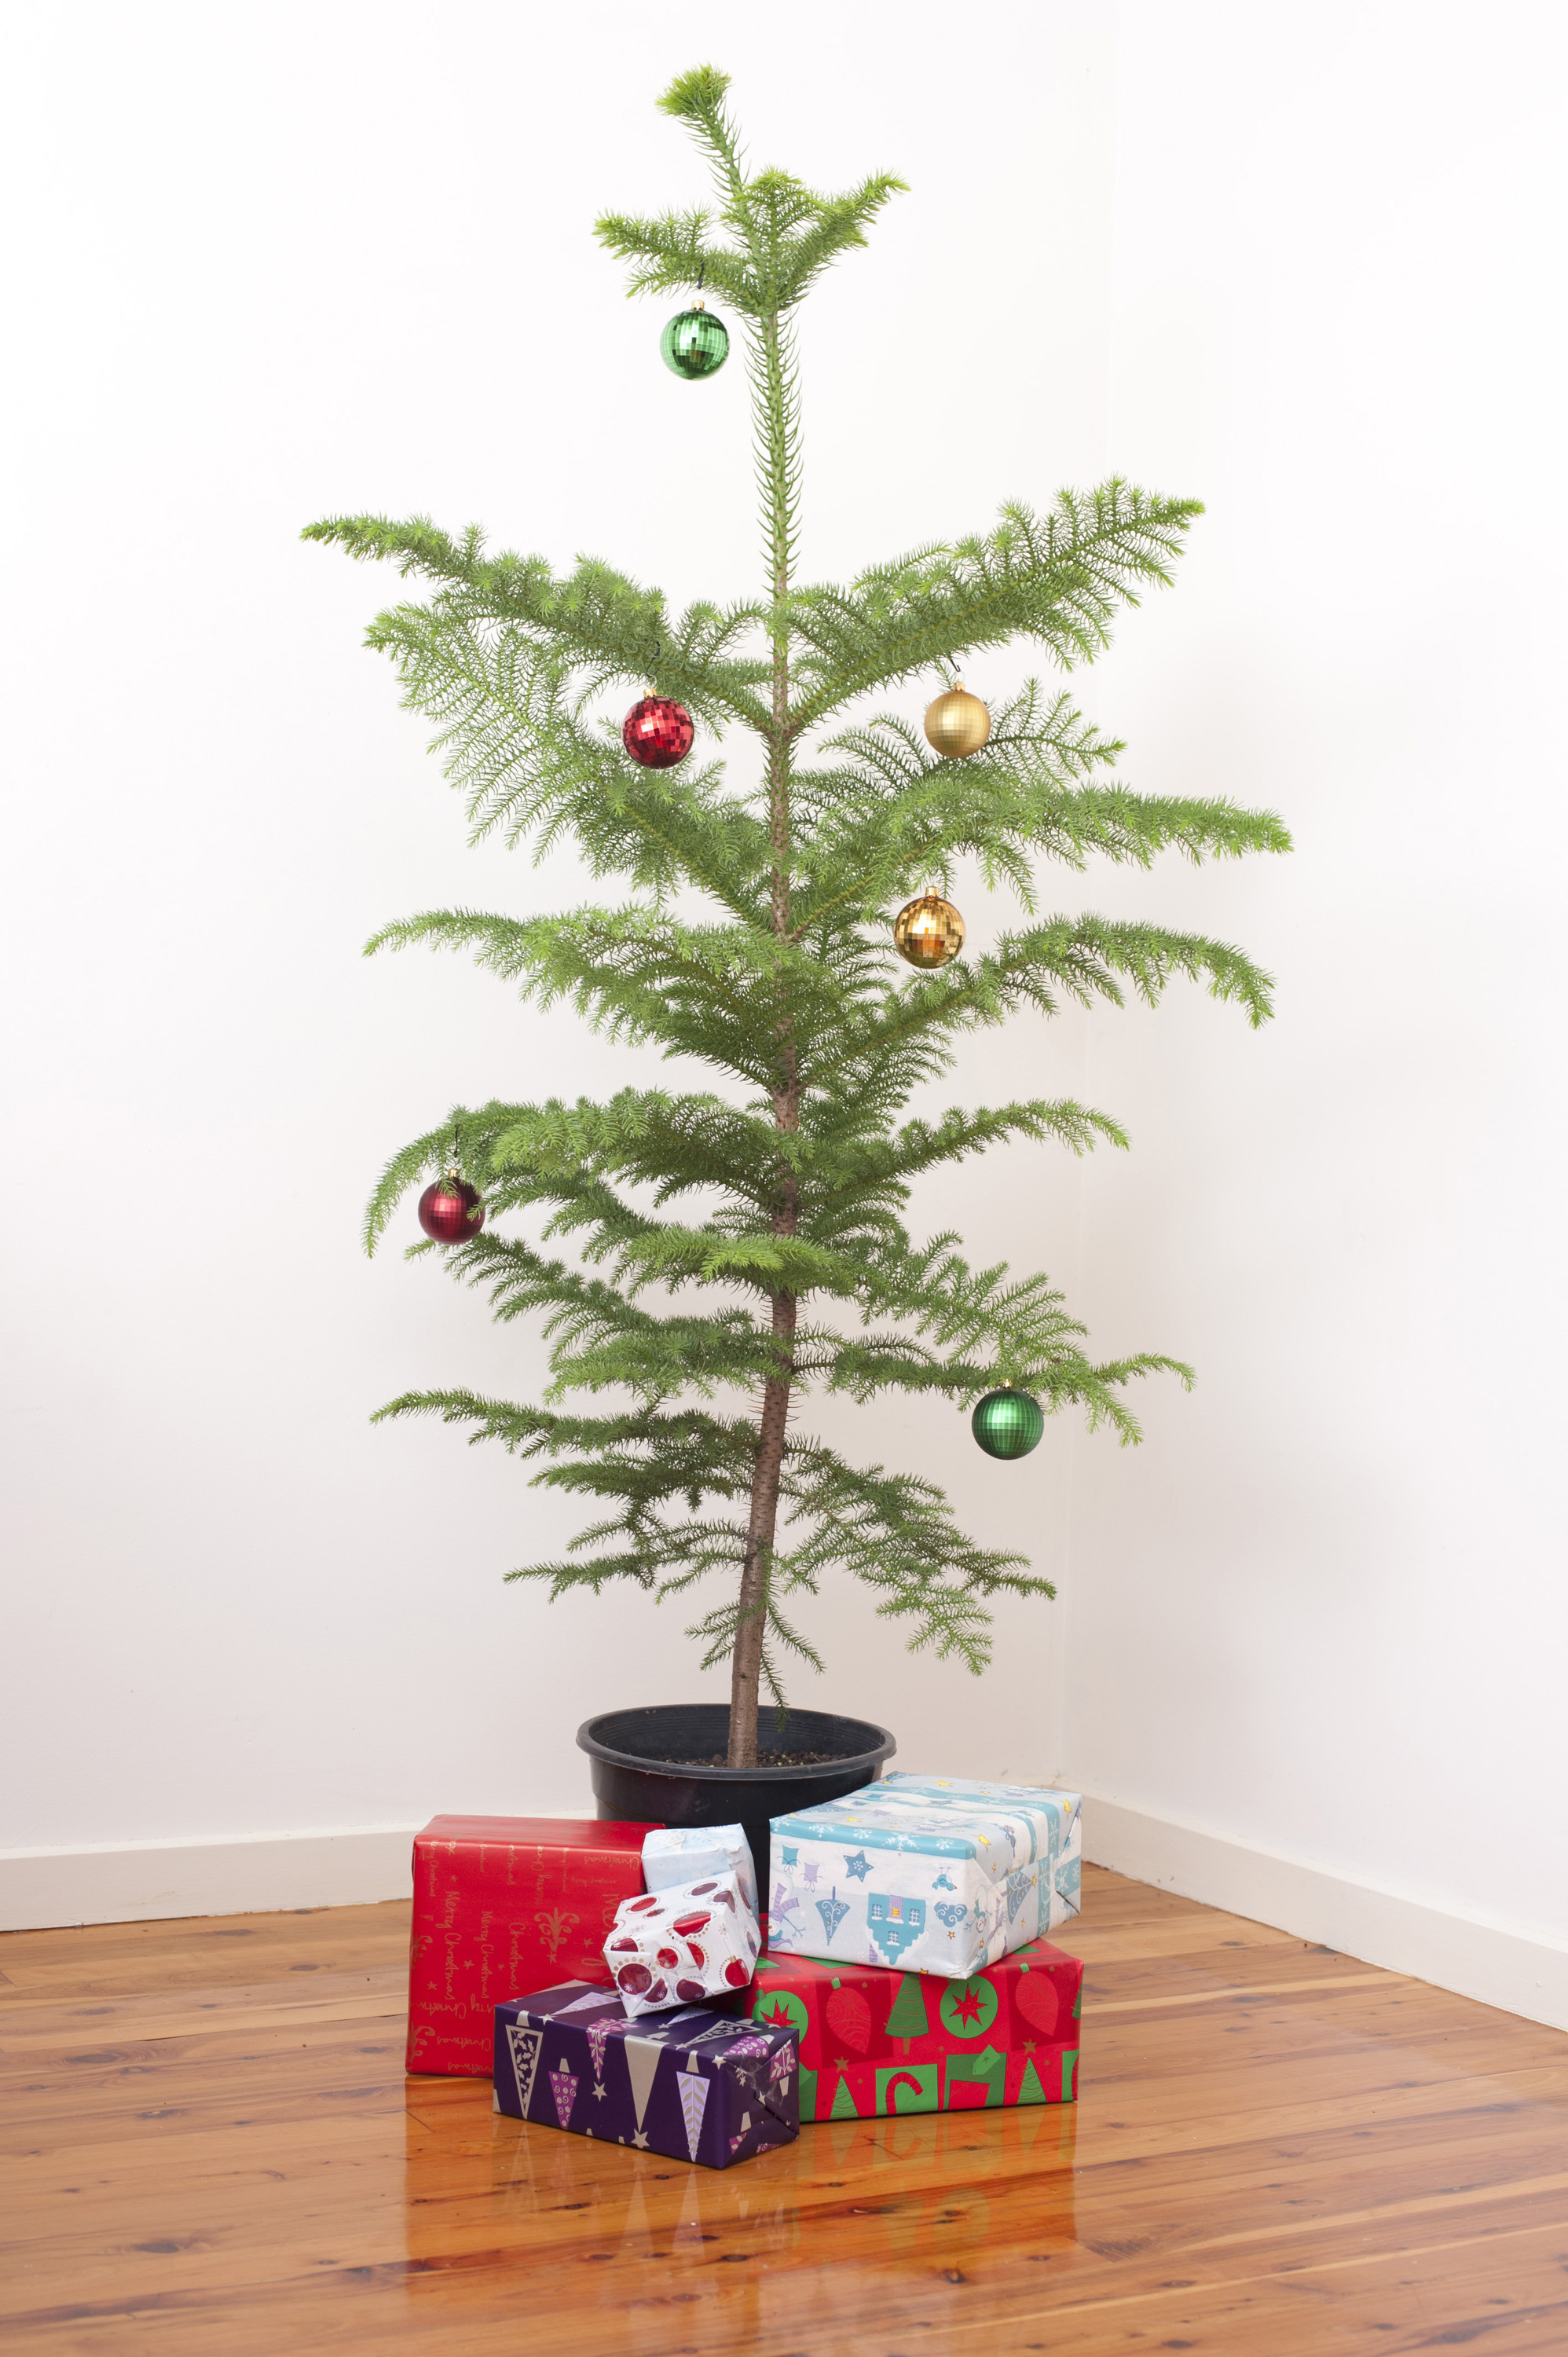 Best Simple Christmas Celebration With A Decorated Potted Norfolk Pine Tree  Hung With Shiny Baubles With A With Small Real Christmas Trees